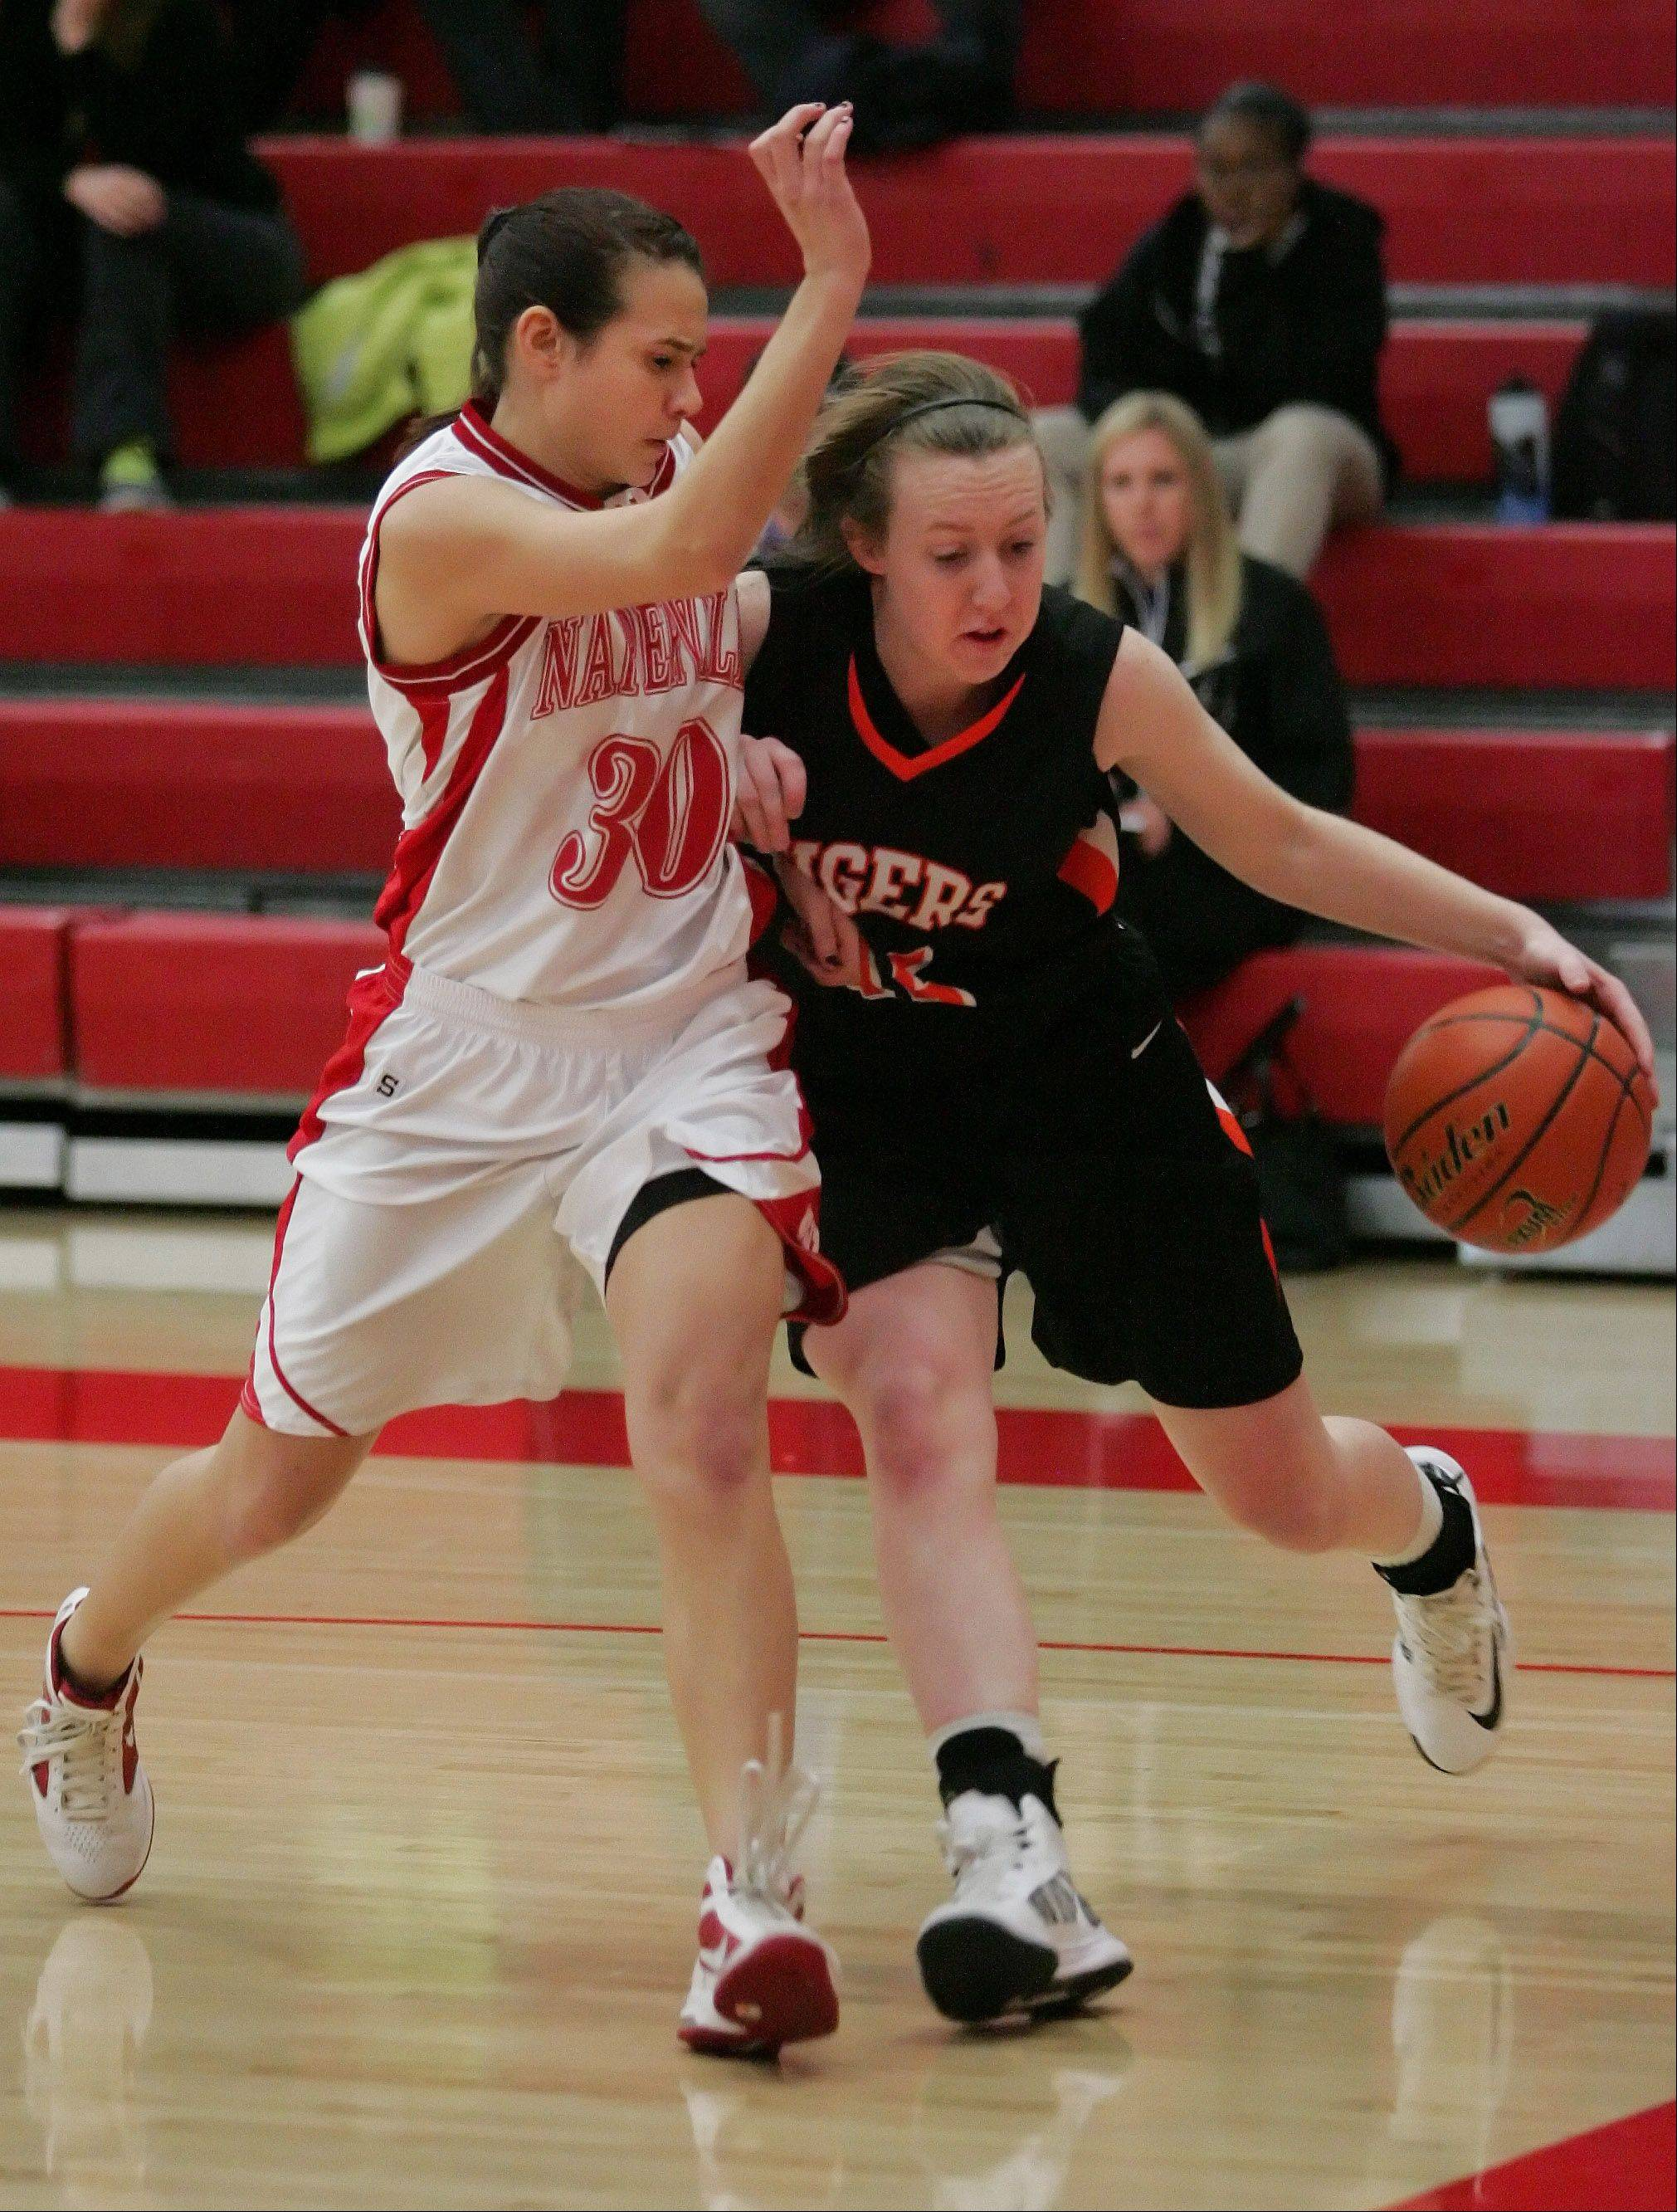 Meghan Waldron of Wheaton Warrenville South, right, drives the ball around Shannon Ryan of Naperville Central.